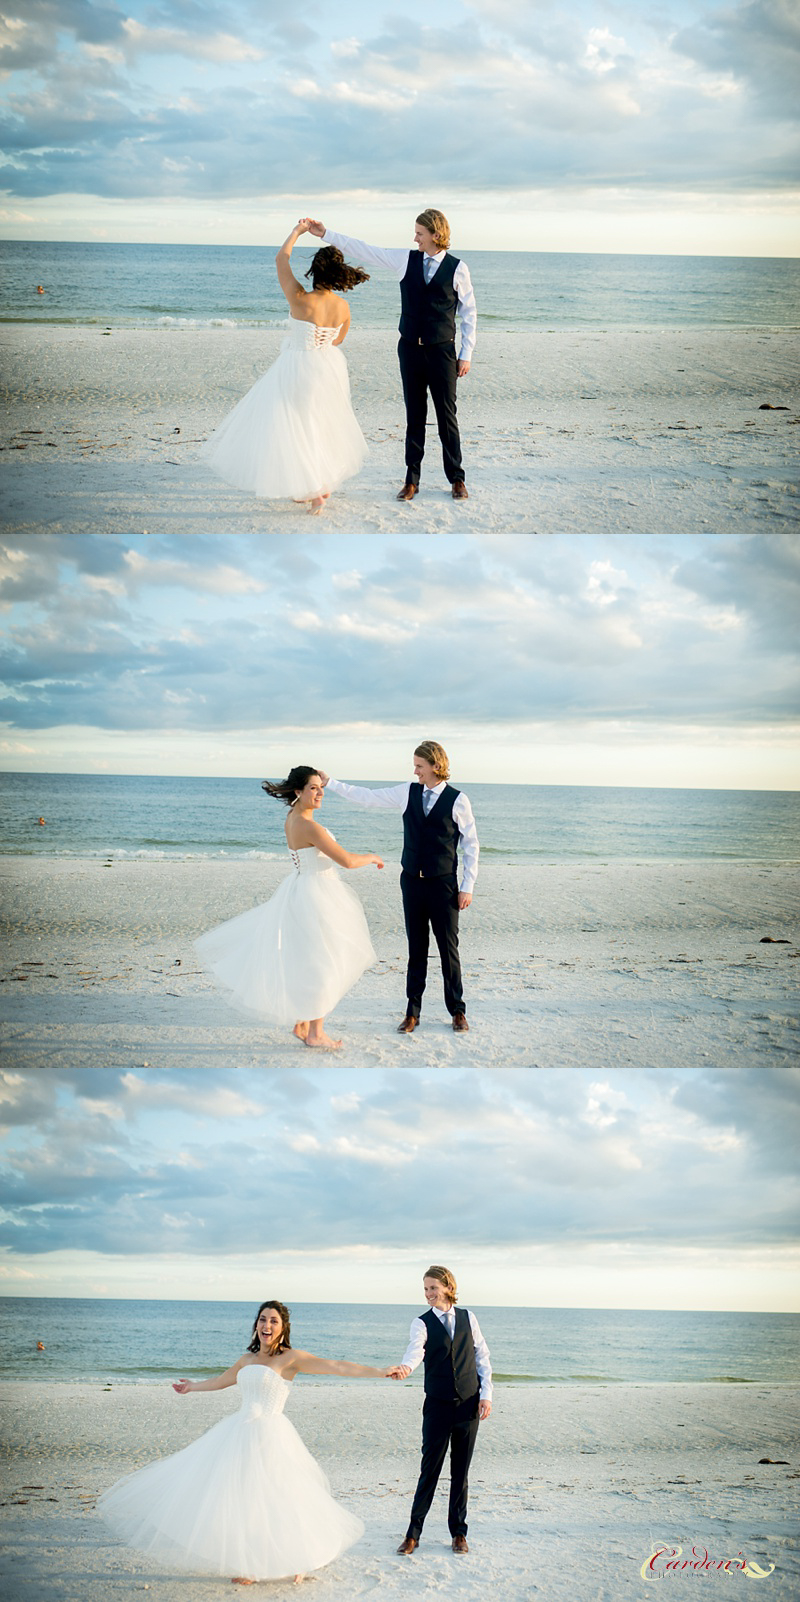 Sometimes you just have to dance on the beach.  To break up portraits with the bride and groom, I will often ask them to do something different, dancing, tickling whatever works!